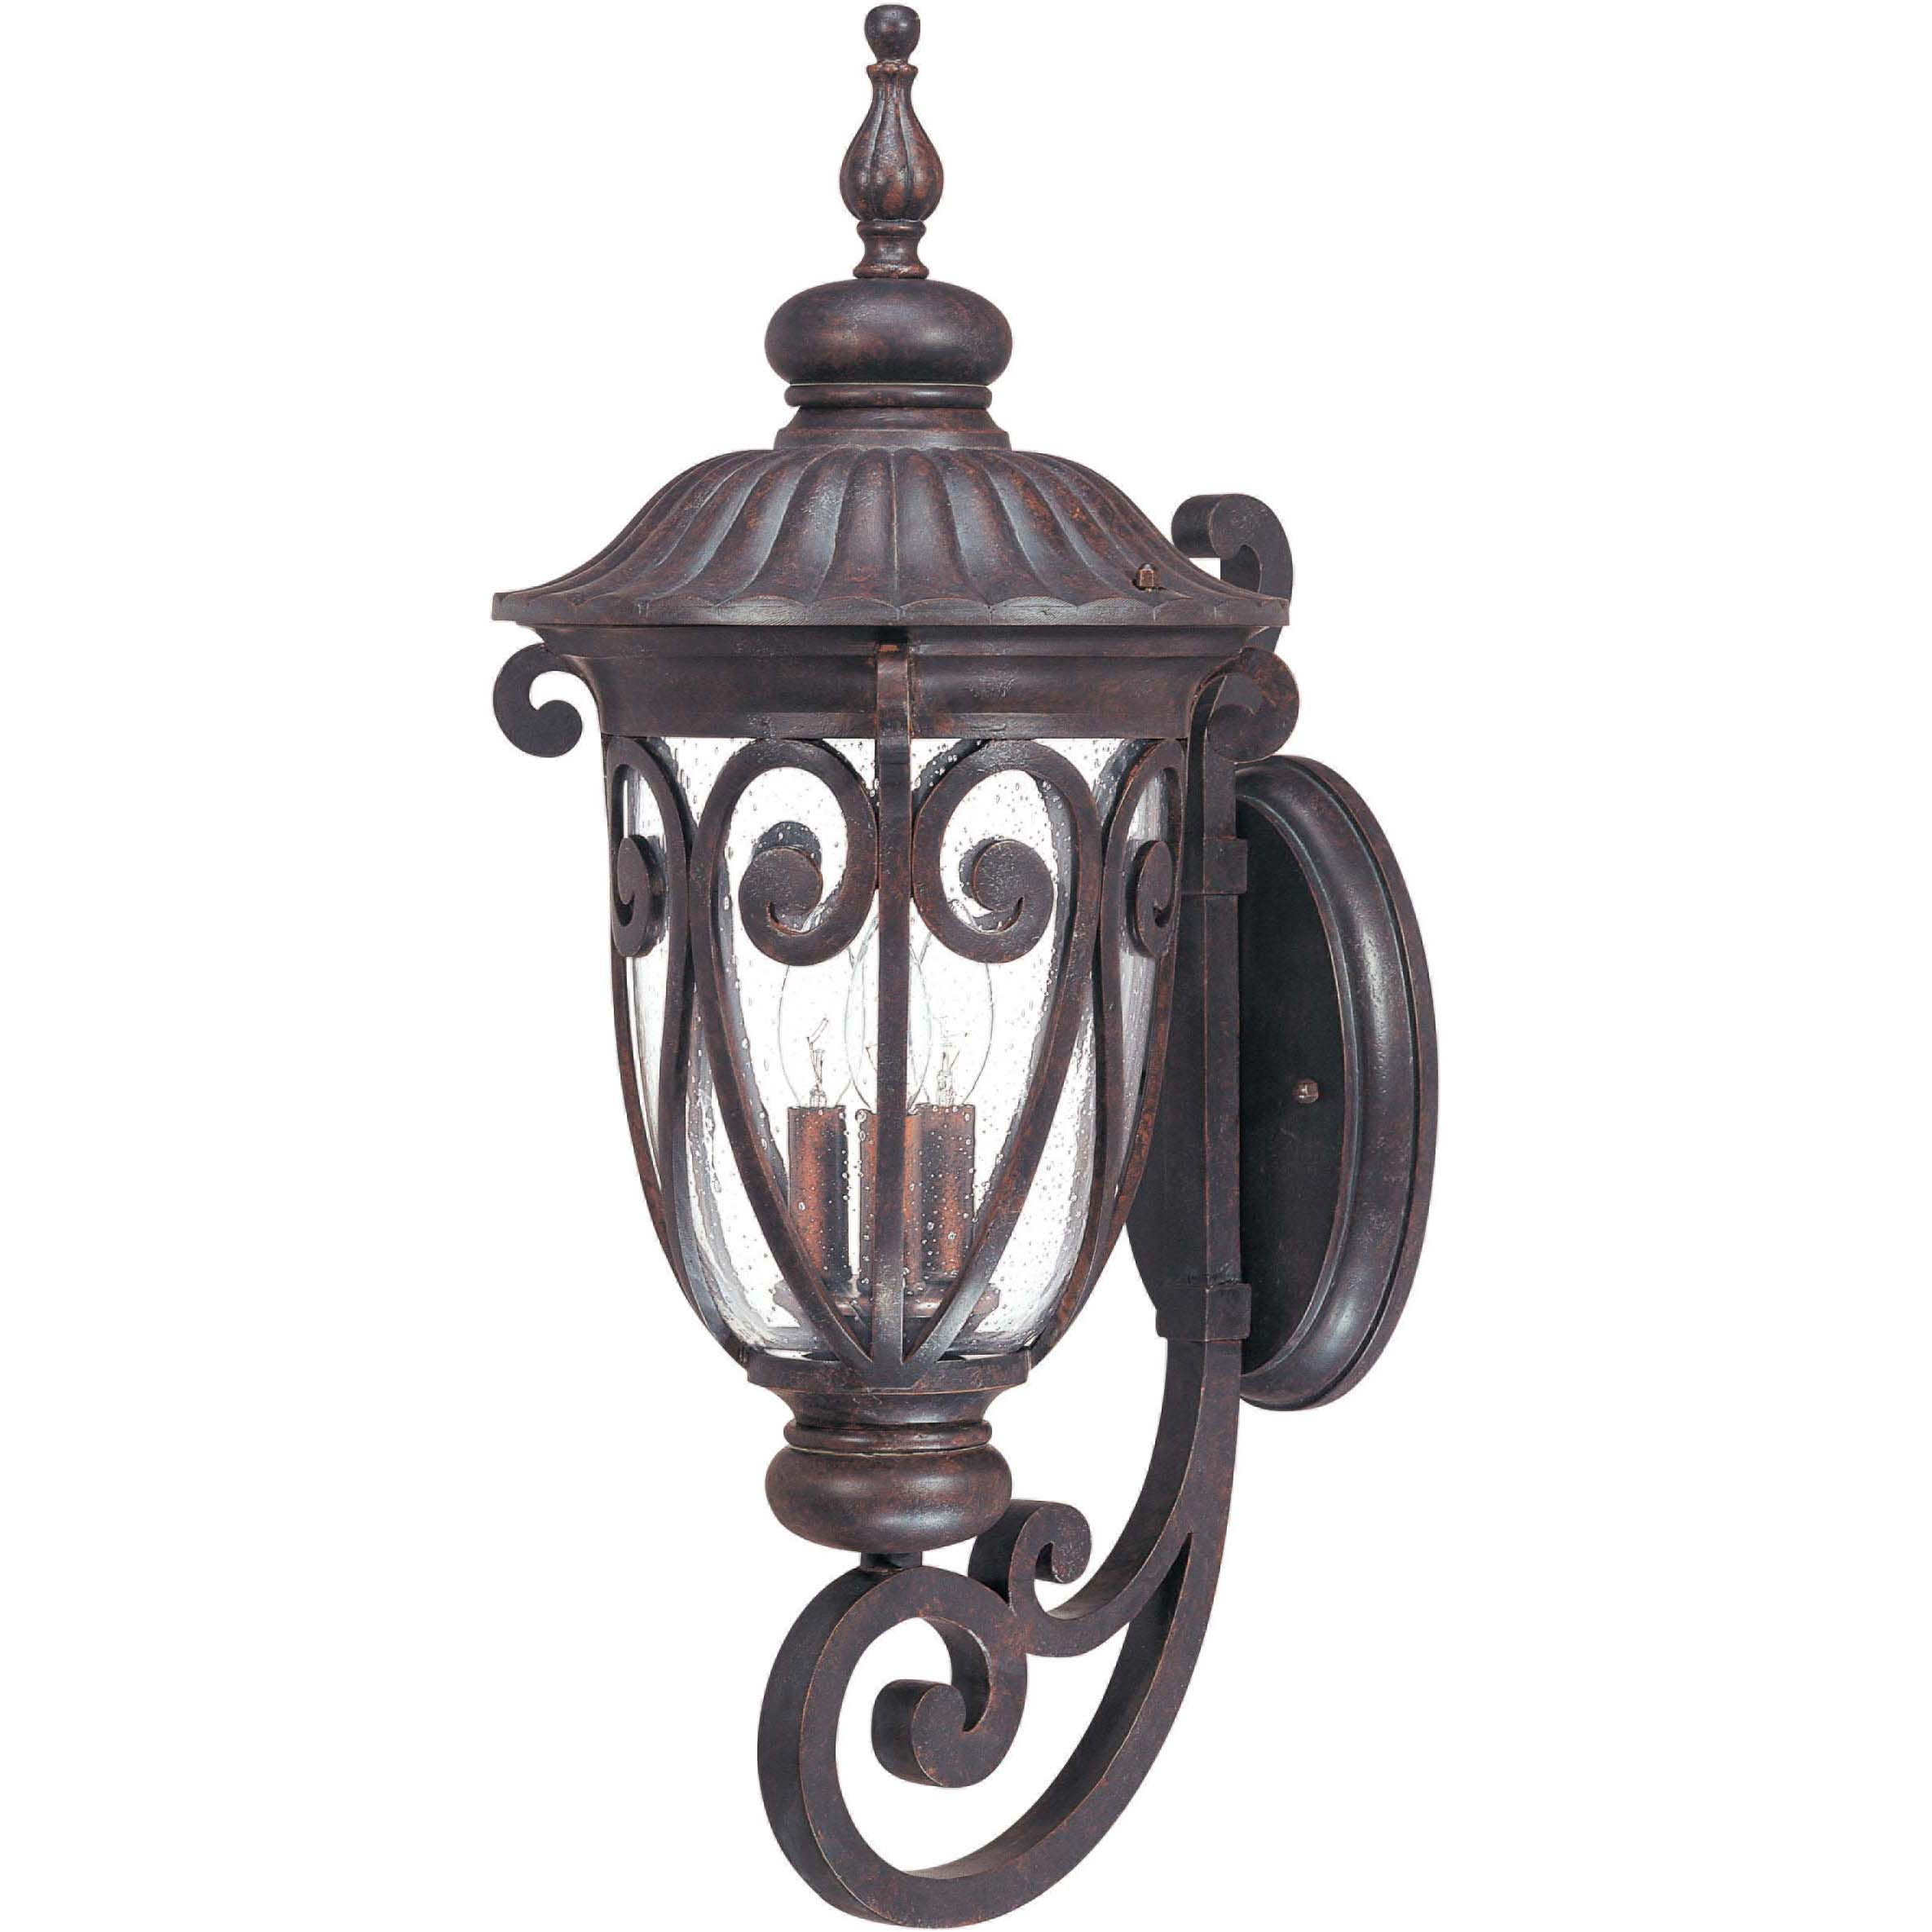 Corniche Arm Up 3-light Burlwood Wall Sconce - Thumbnail 0